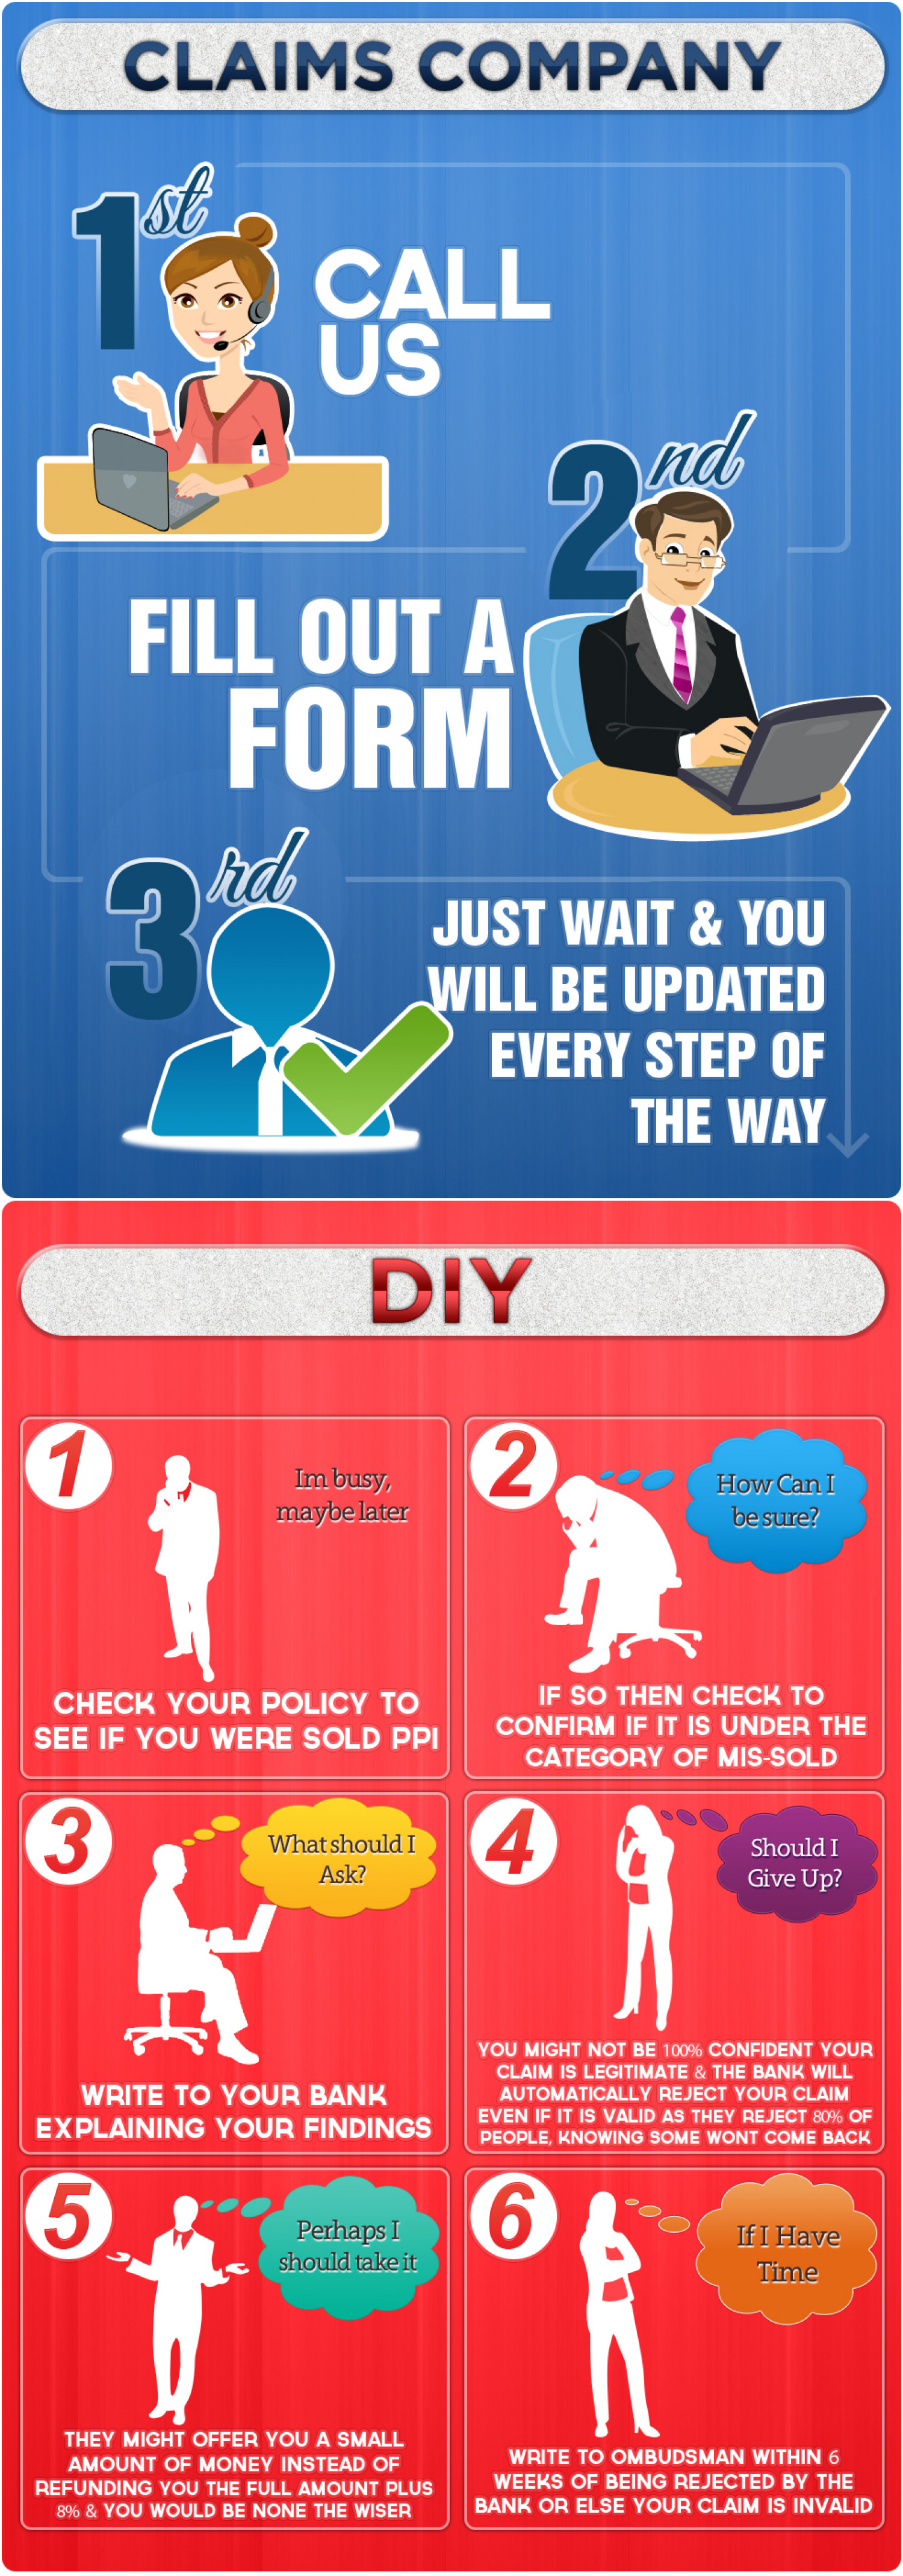 PPI Claims Proccesses Infographic